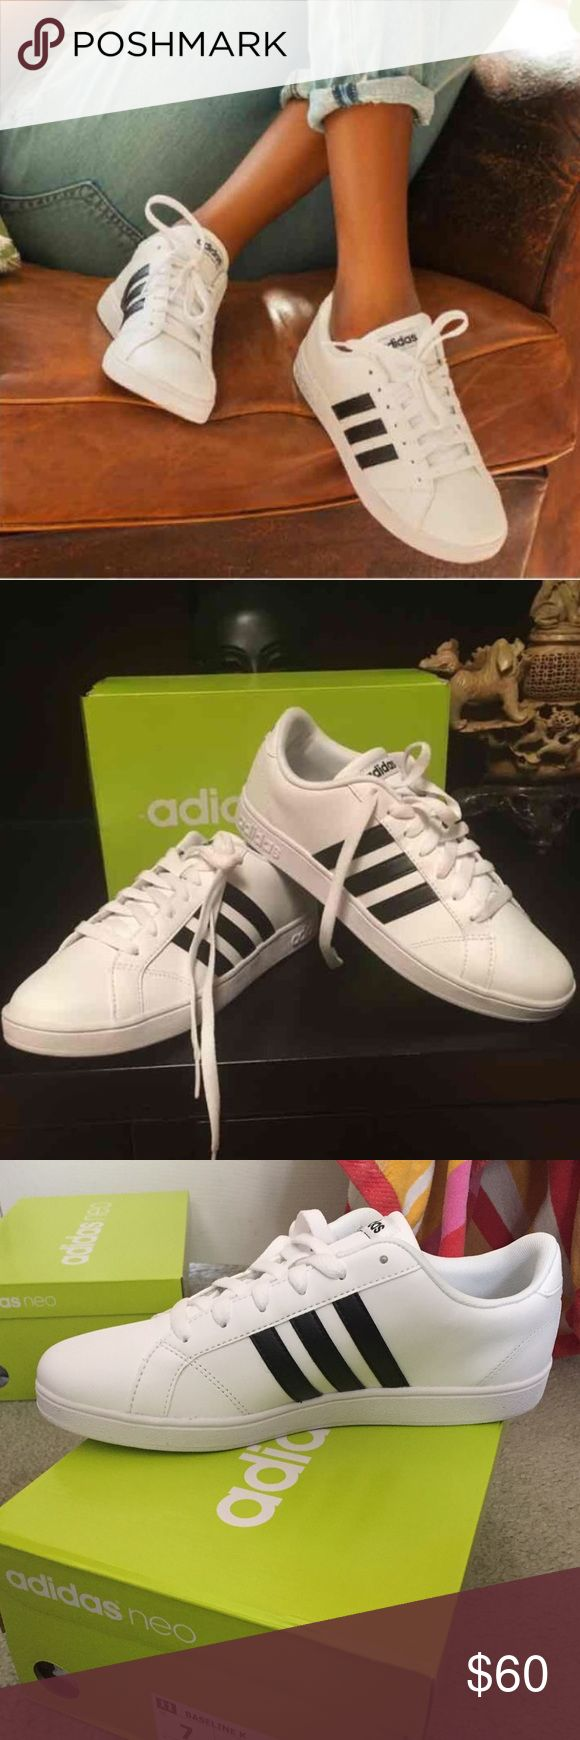 Adidas baseline white sneakers women's size 8 These youth size 7 sneakers are equivalent to a women's size 8. Brand new with box! Adidas Shoes Sneakers